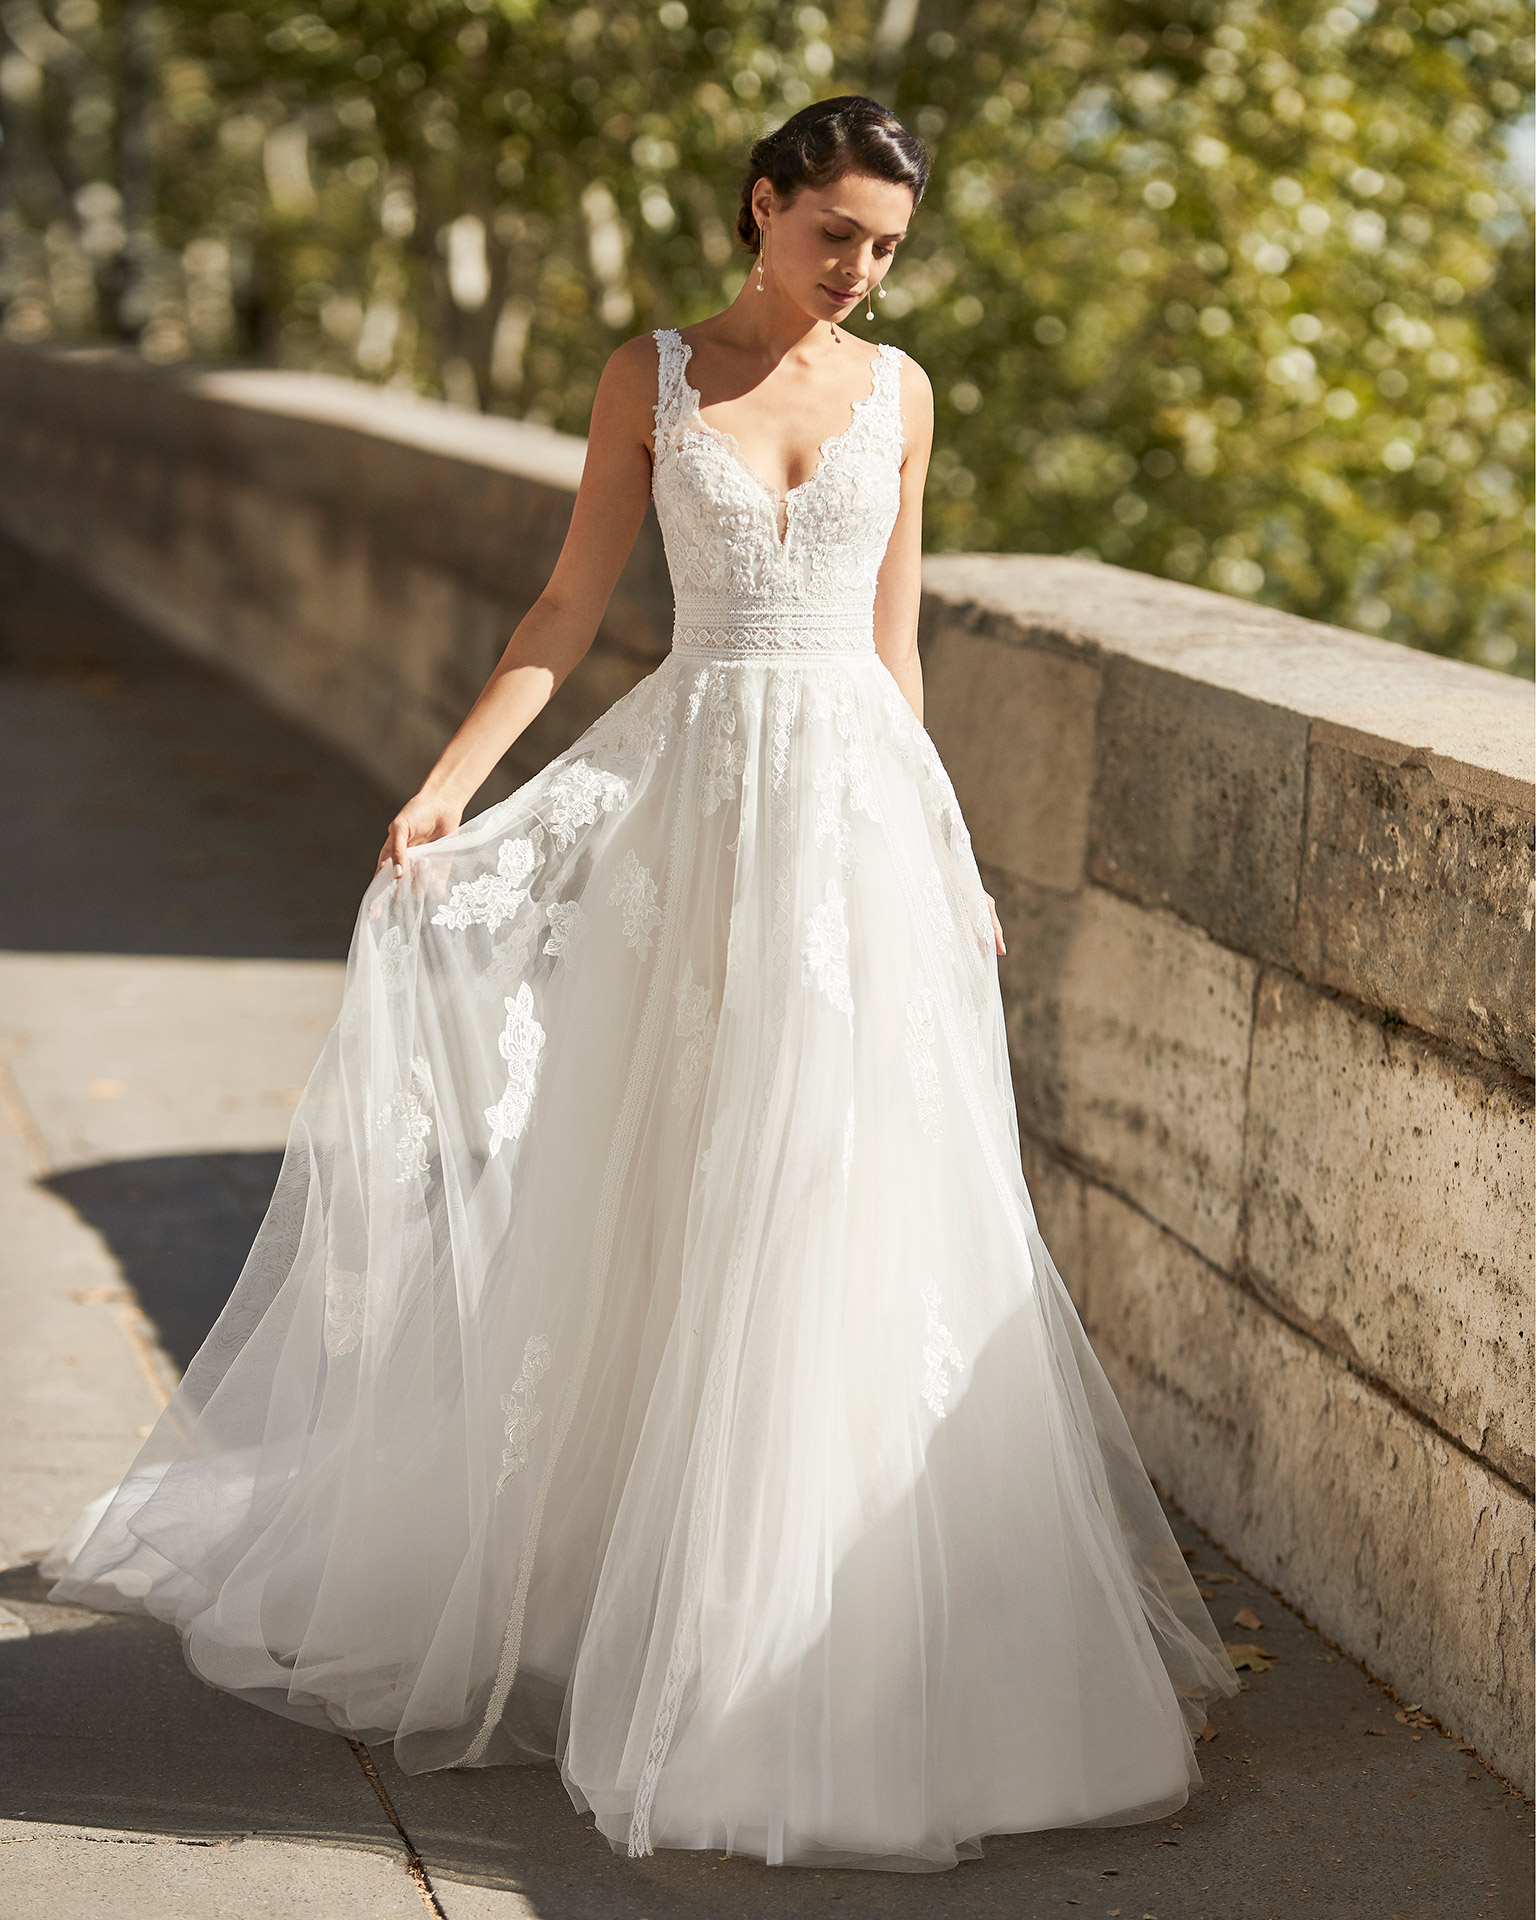 Wedding dress in tulle with lace appliqués on skirt. V-neckline in lace, beaded shoulder straps and belt and V-back in lace. 2021 ALMANOVIA Collection.